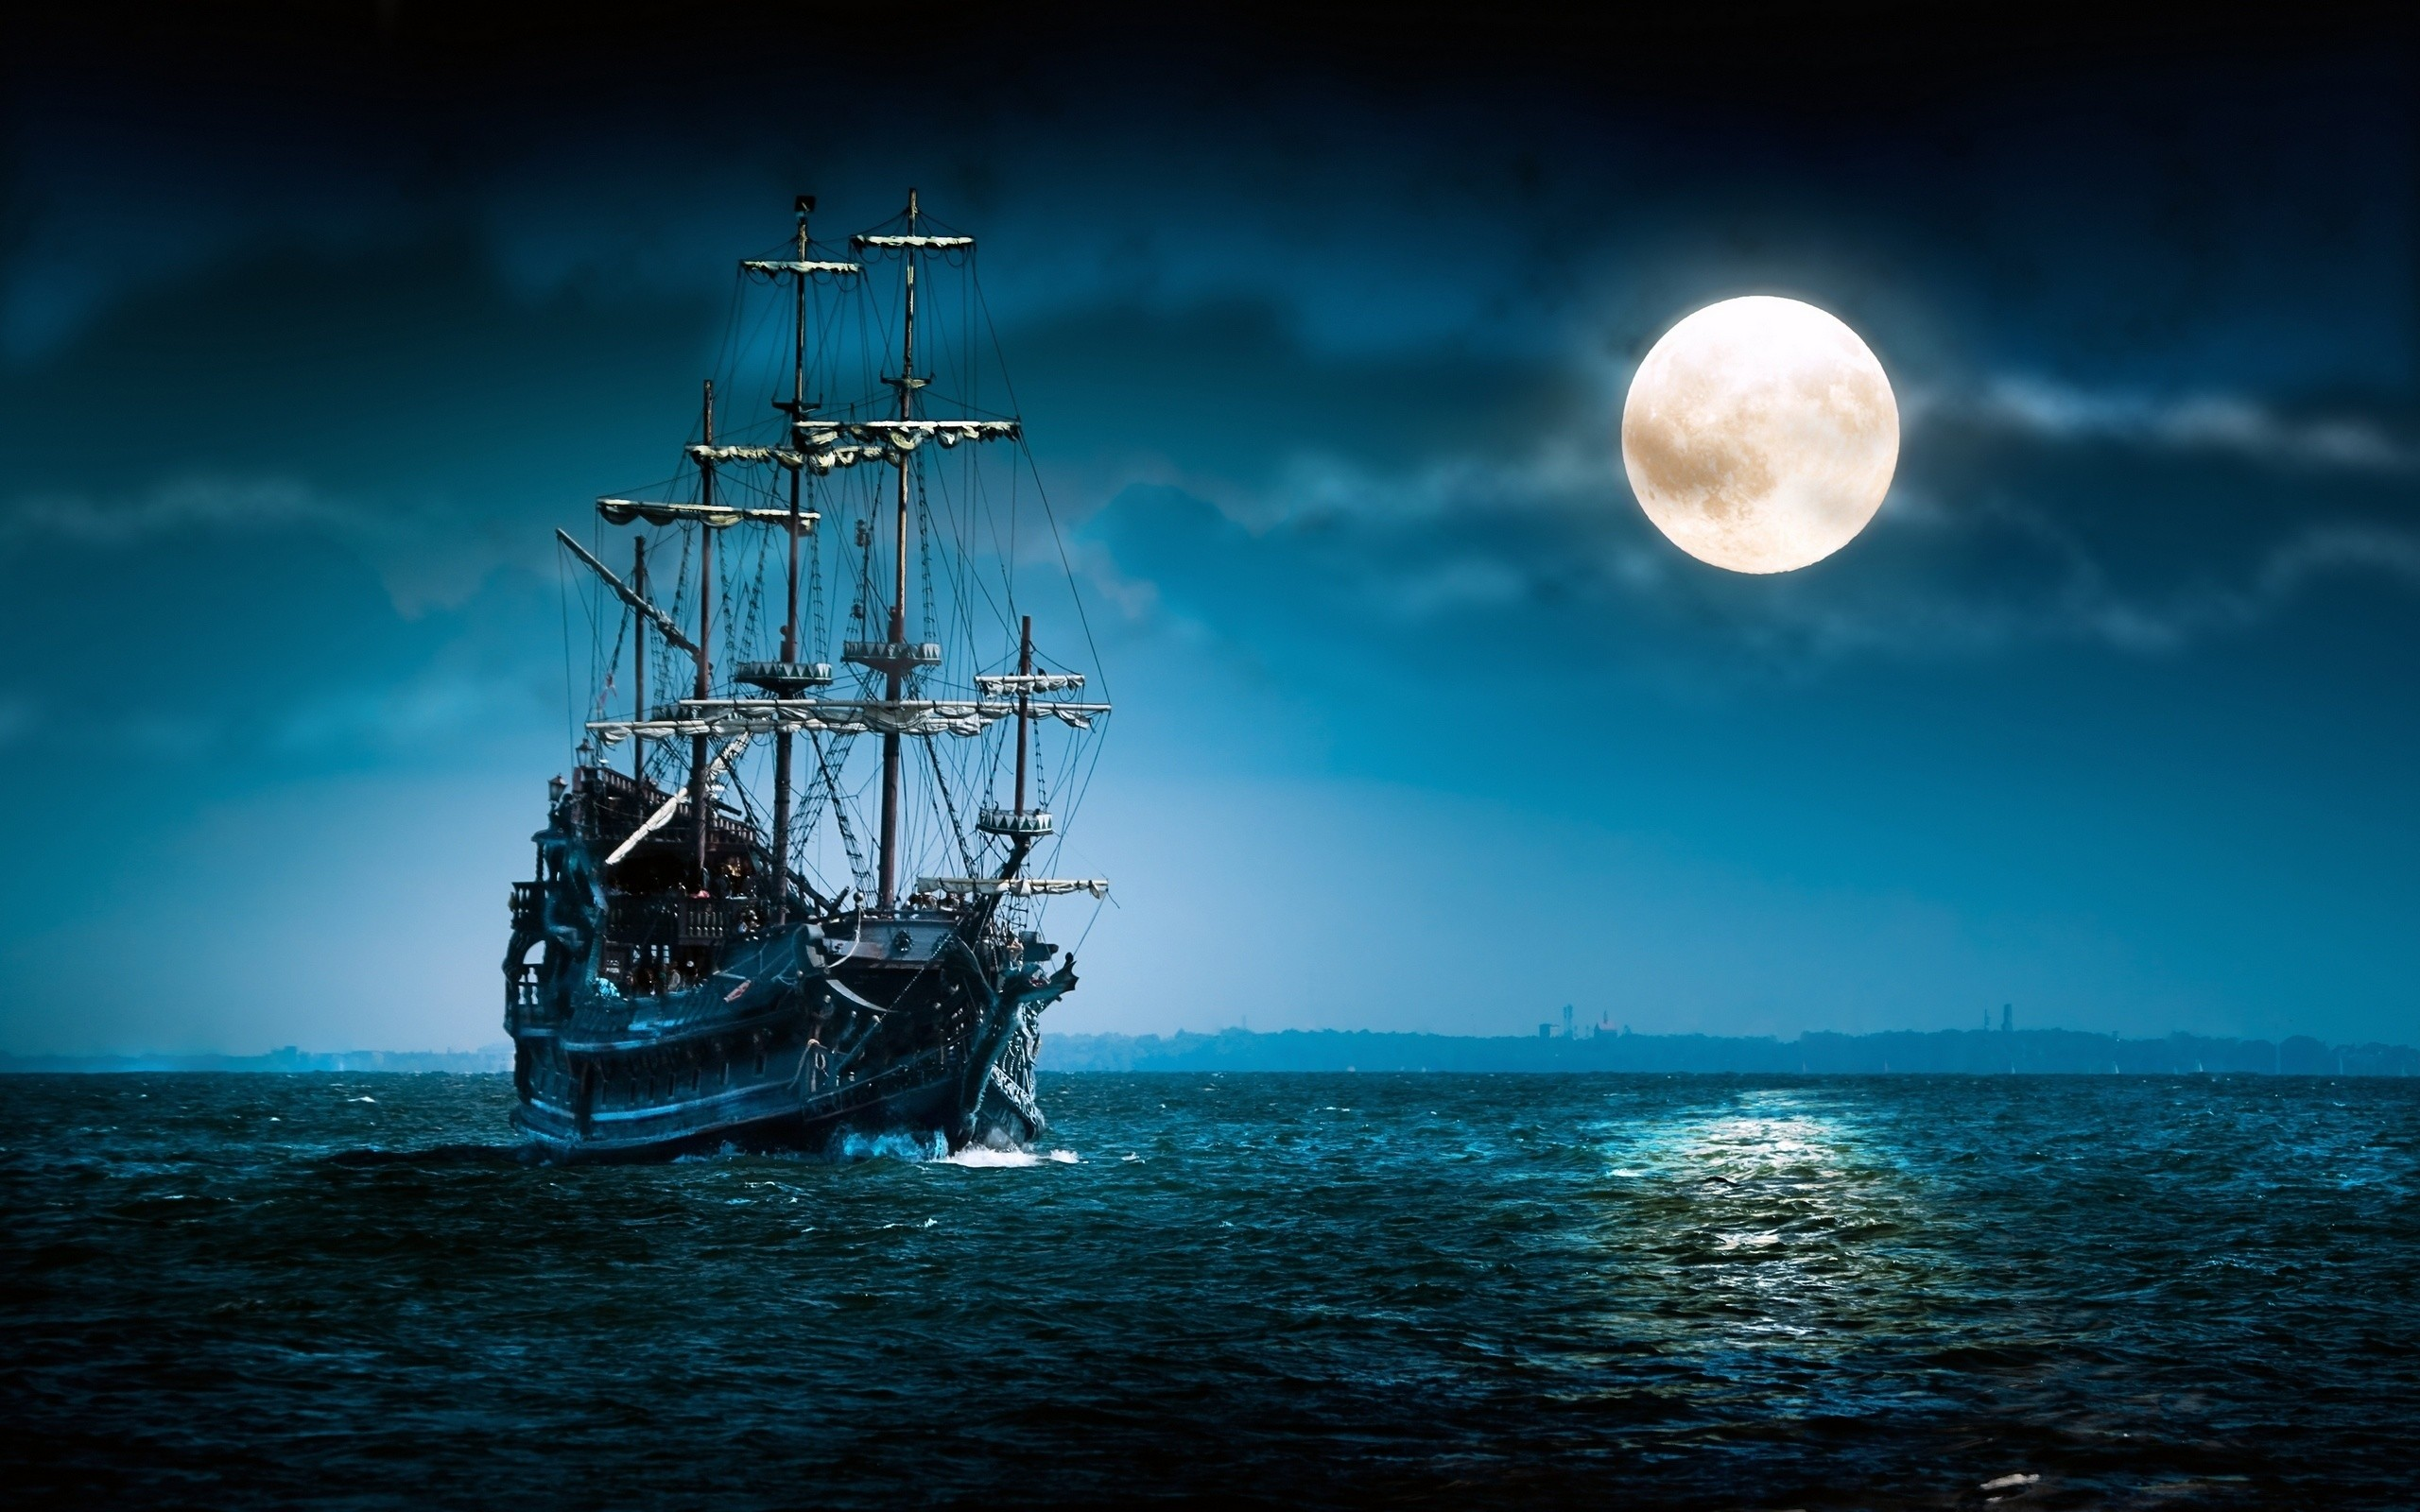 2560x1600 Sailboat Sea Moon Ship Boat Ocean Night Mood Wallpaper Background